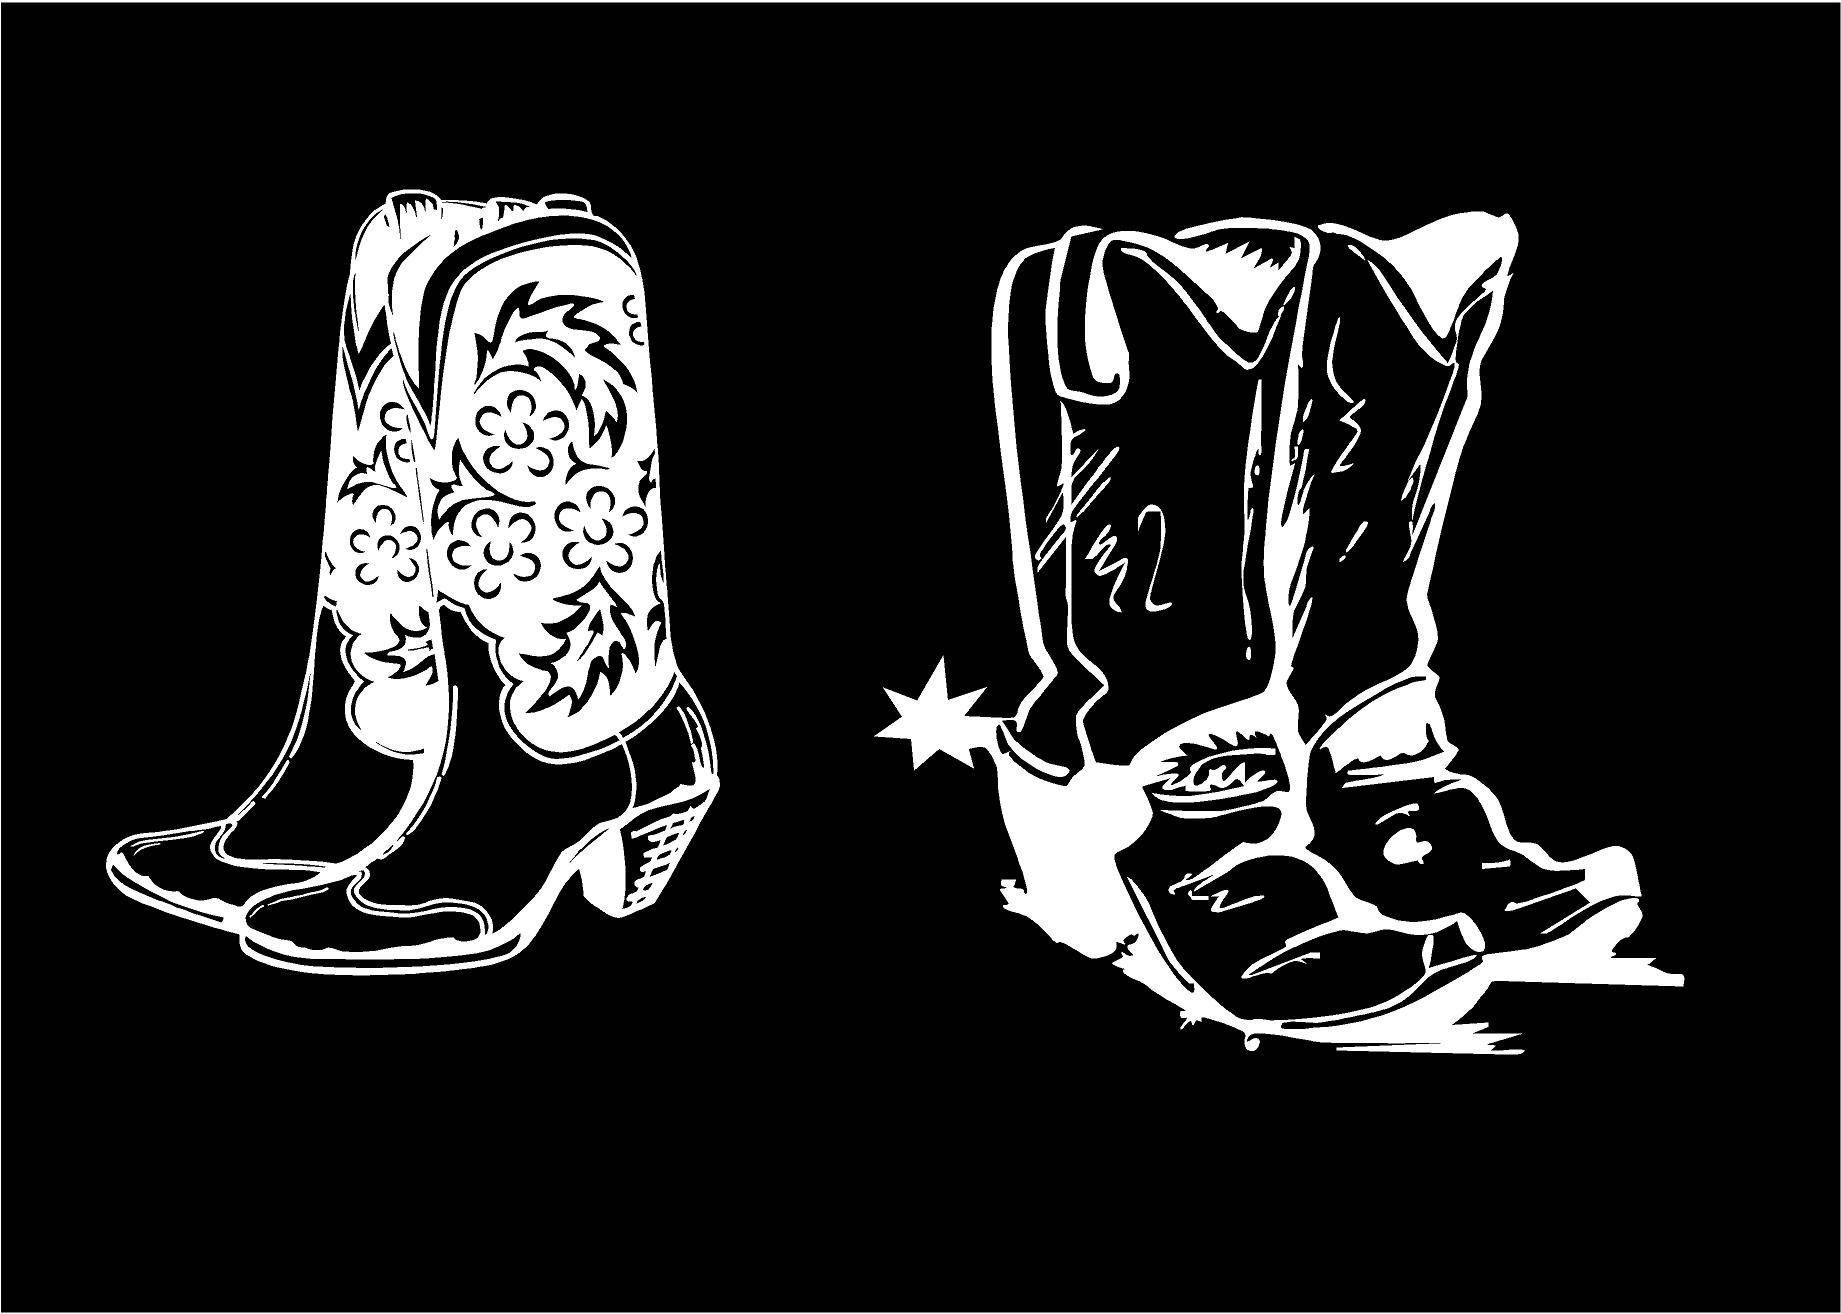 Western Boot Decal Cowboy Boot Decal Cowgirl Boot Decal Car Decal - Cowboy custom vinyl decals for trucks